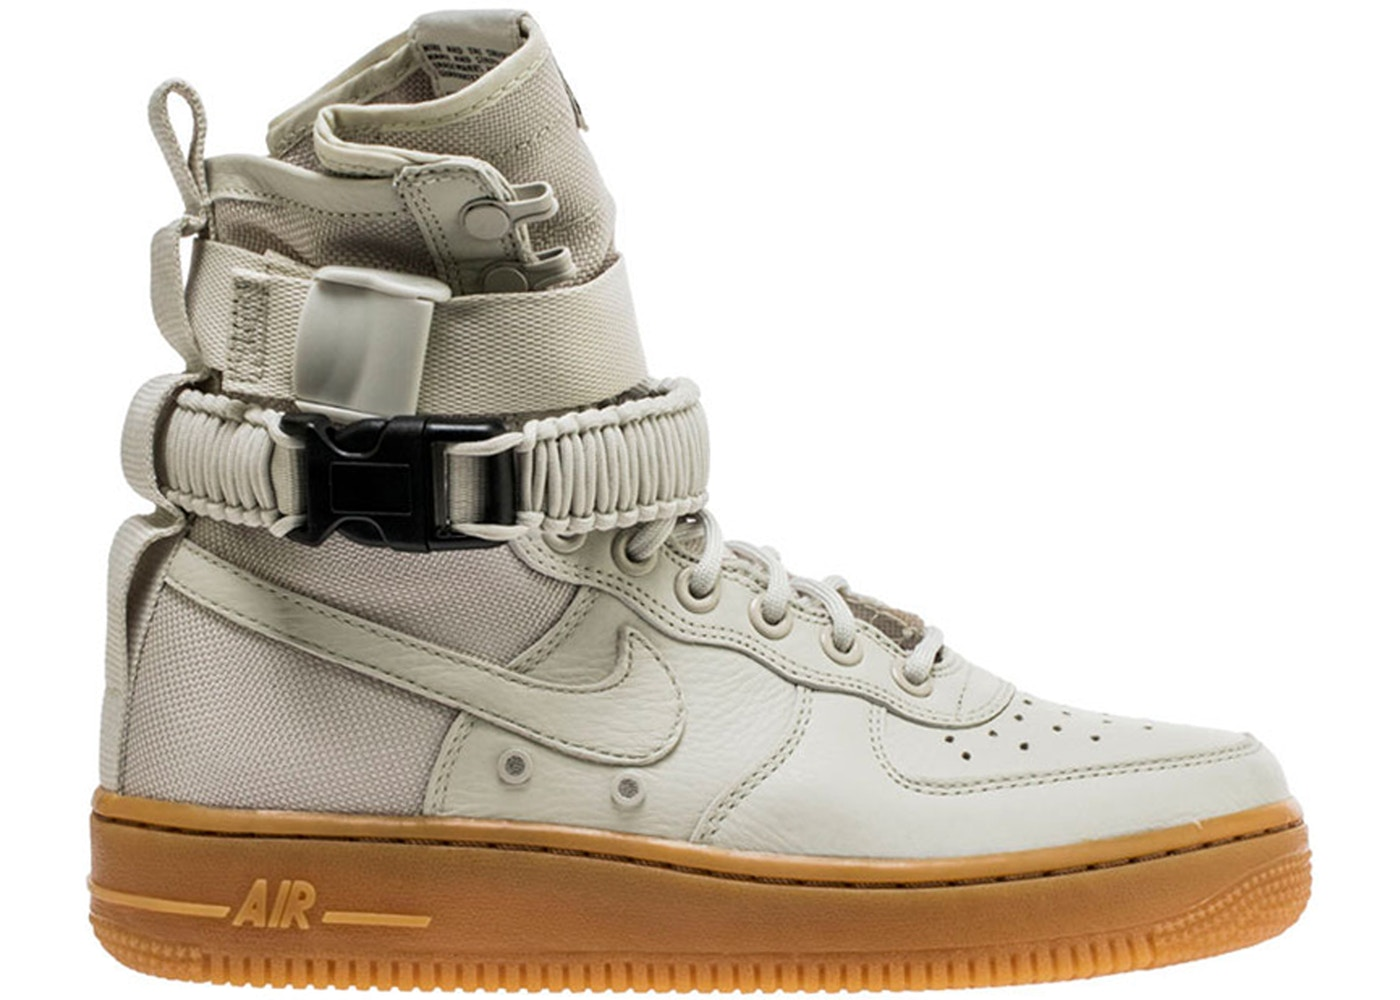 Nike SF Air Force 1 High Light Bone (W)